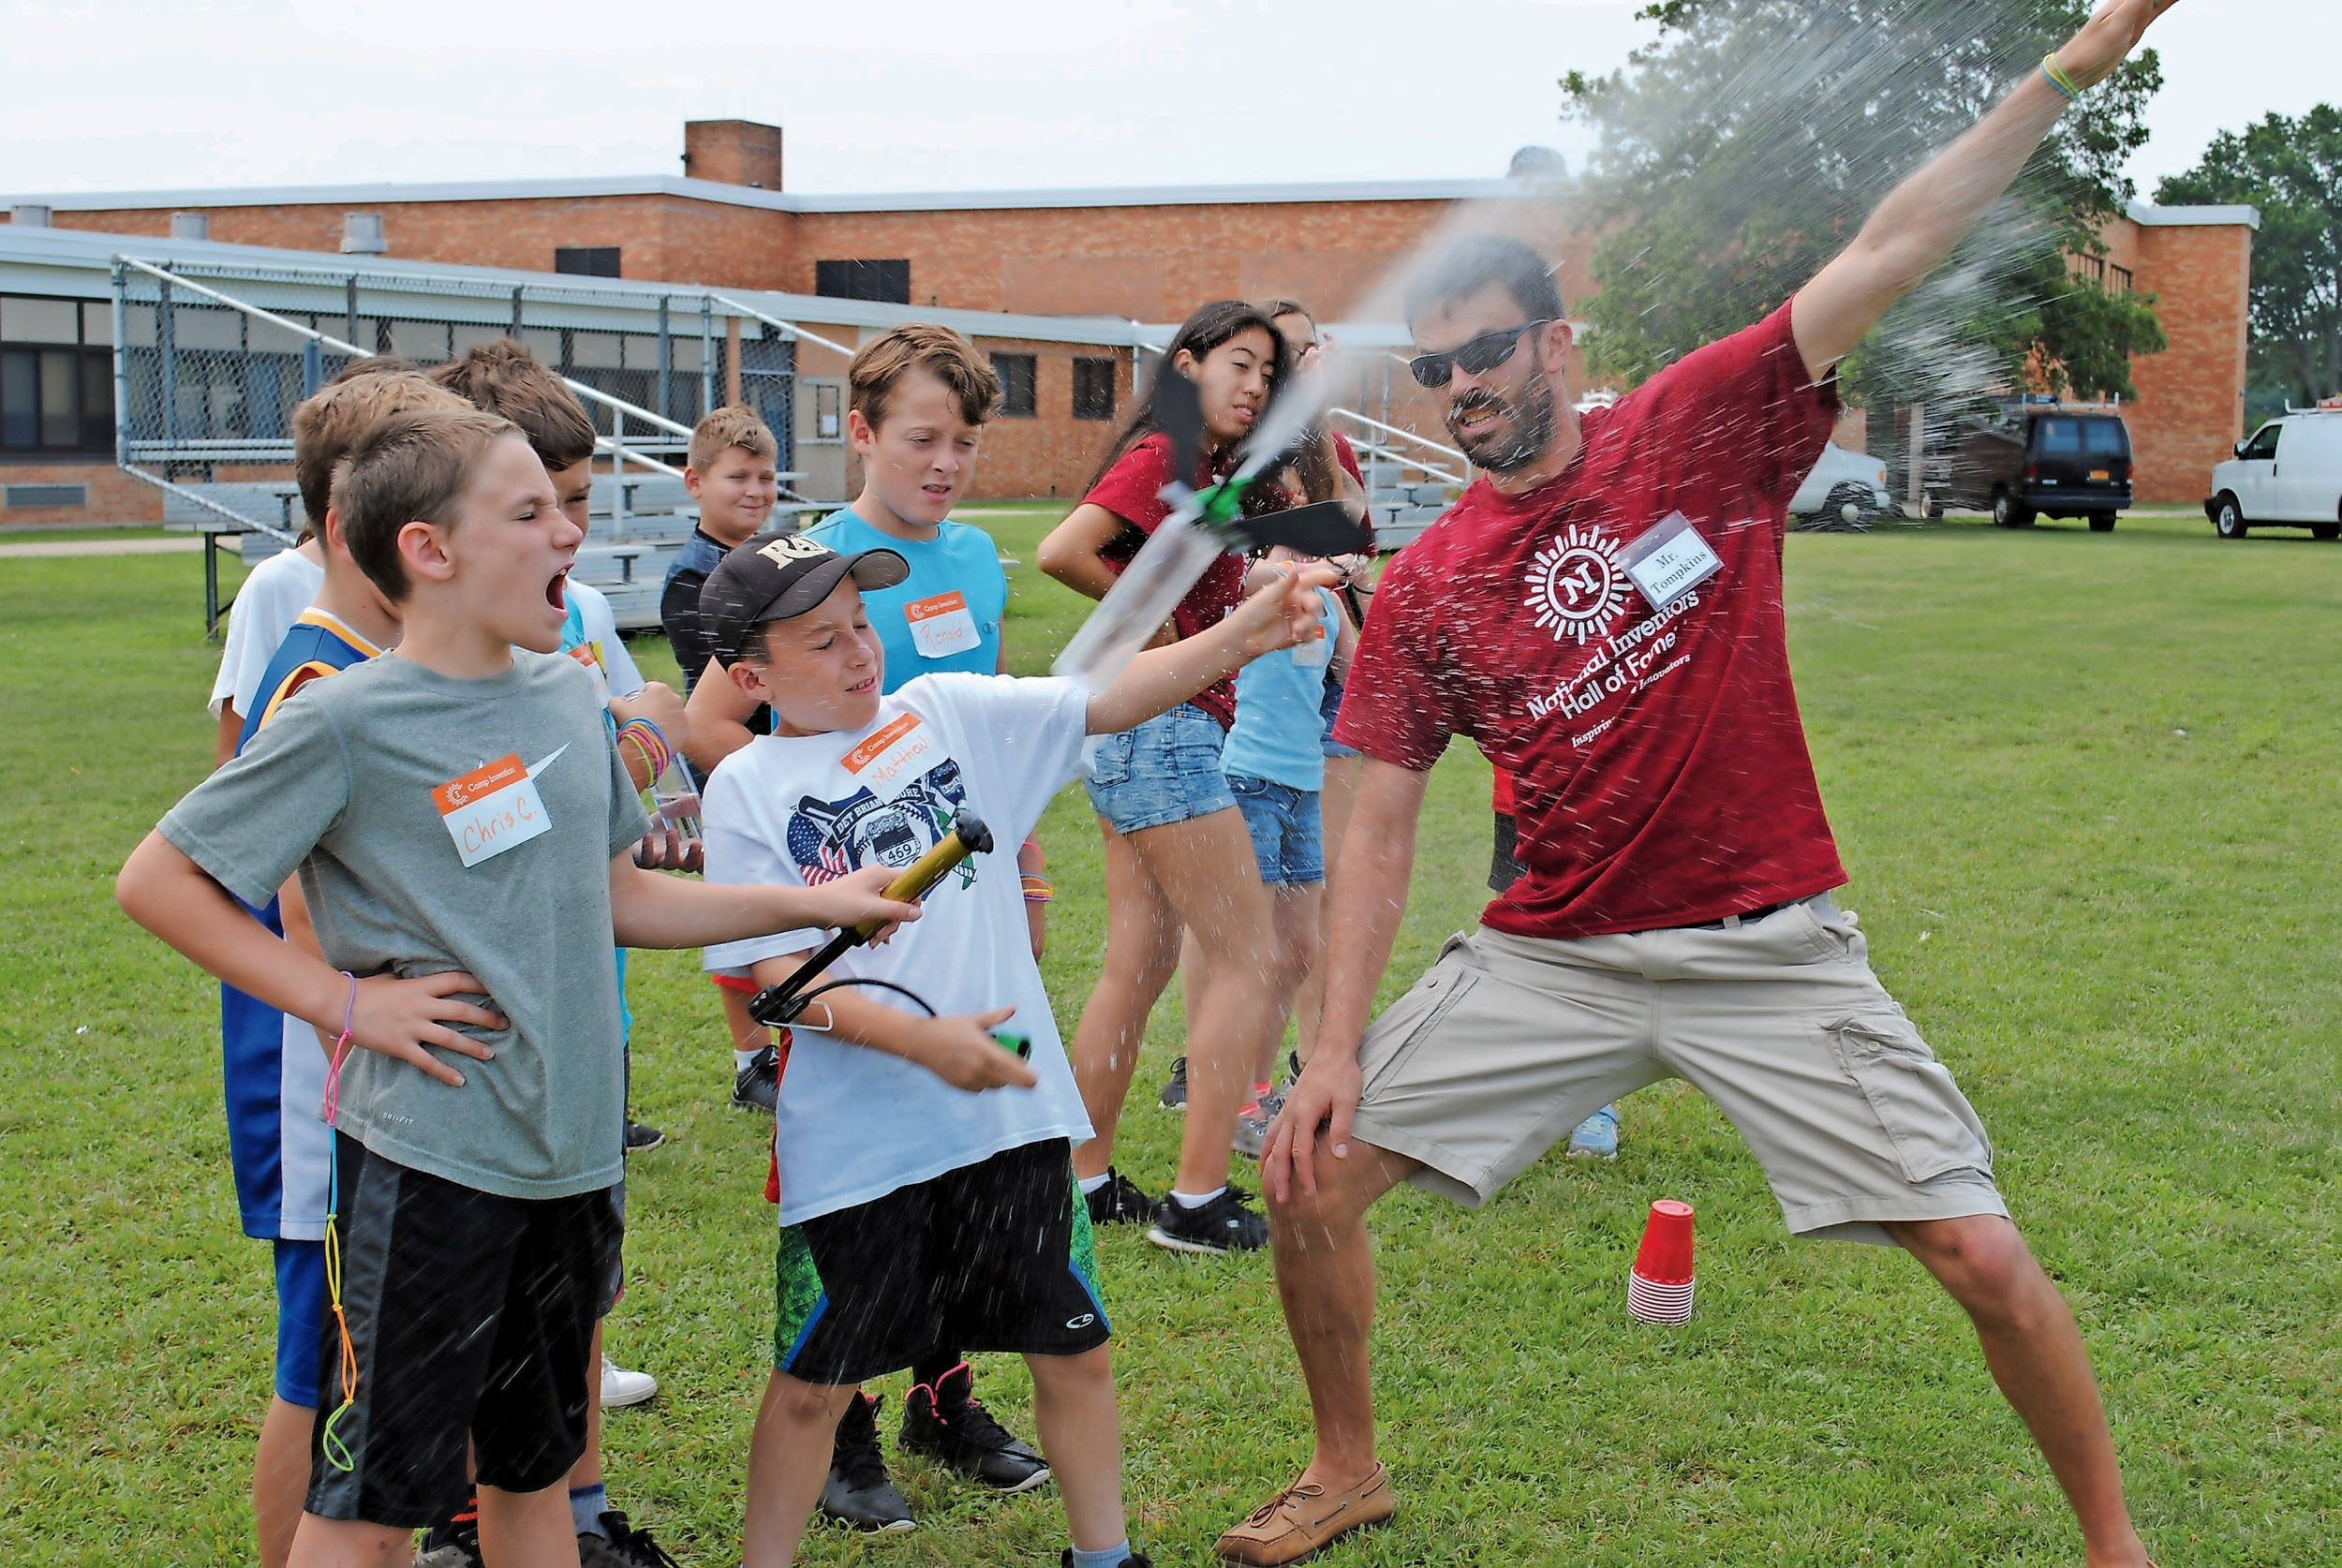 Eric Tompkins, a science teacher at MacArthur High School, helped Christopher Chianese, far left, and Matthew Hartmann launch water out of a rocket at Camp Invention, a hands-on summer science camp for students in the Levittown School District.